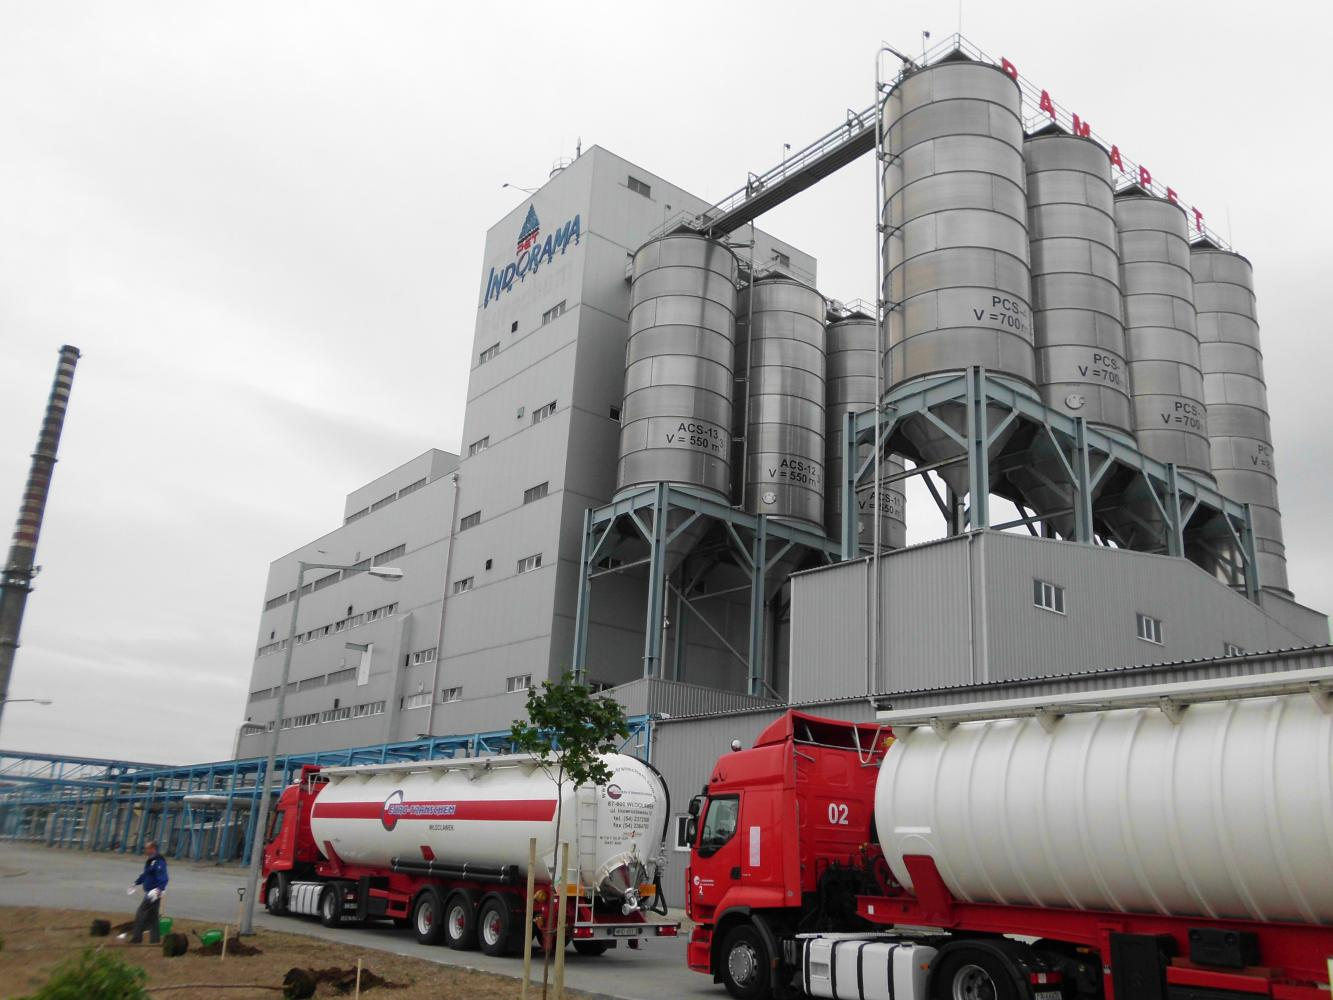 IVL is a global petrochemicals producer with a manufacturing footprint across Africa, Asia, Europe and the Americas. Mr Lohia says IVL supports the circular economy and environmental sustainability globally. *No photo credit*